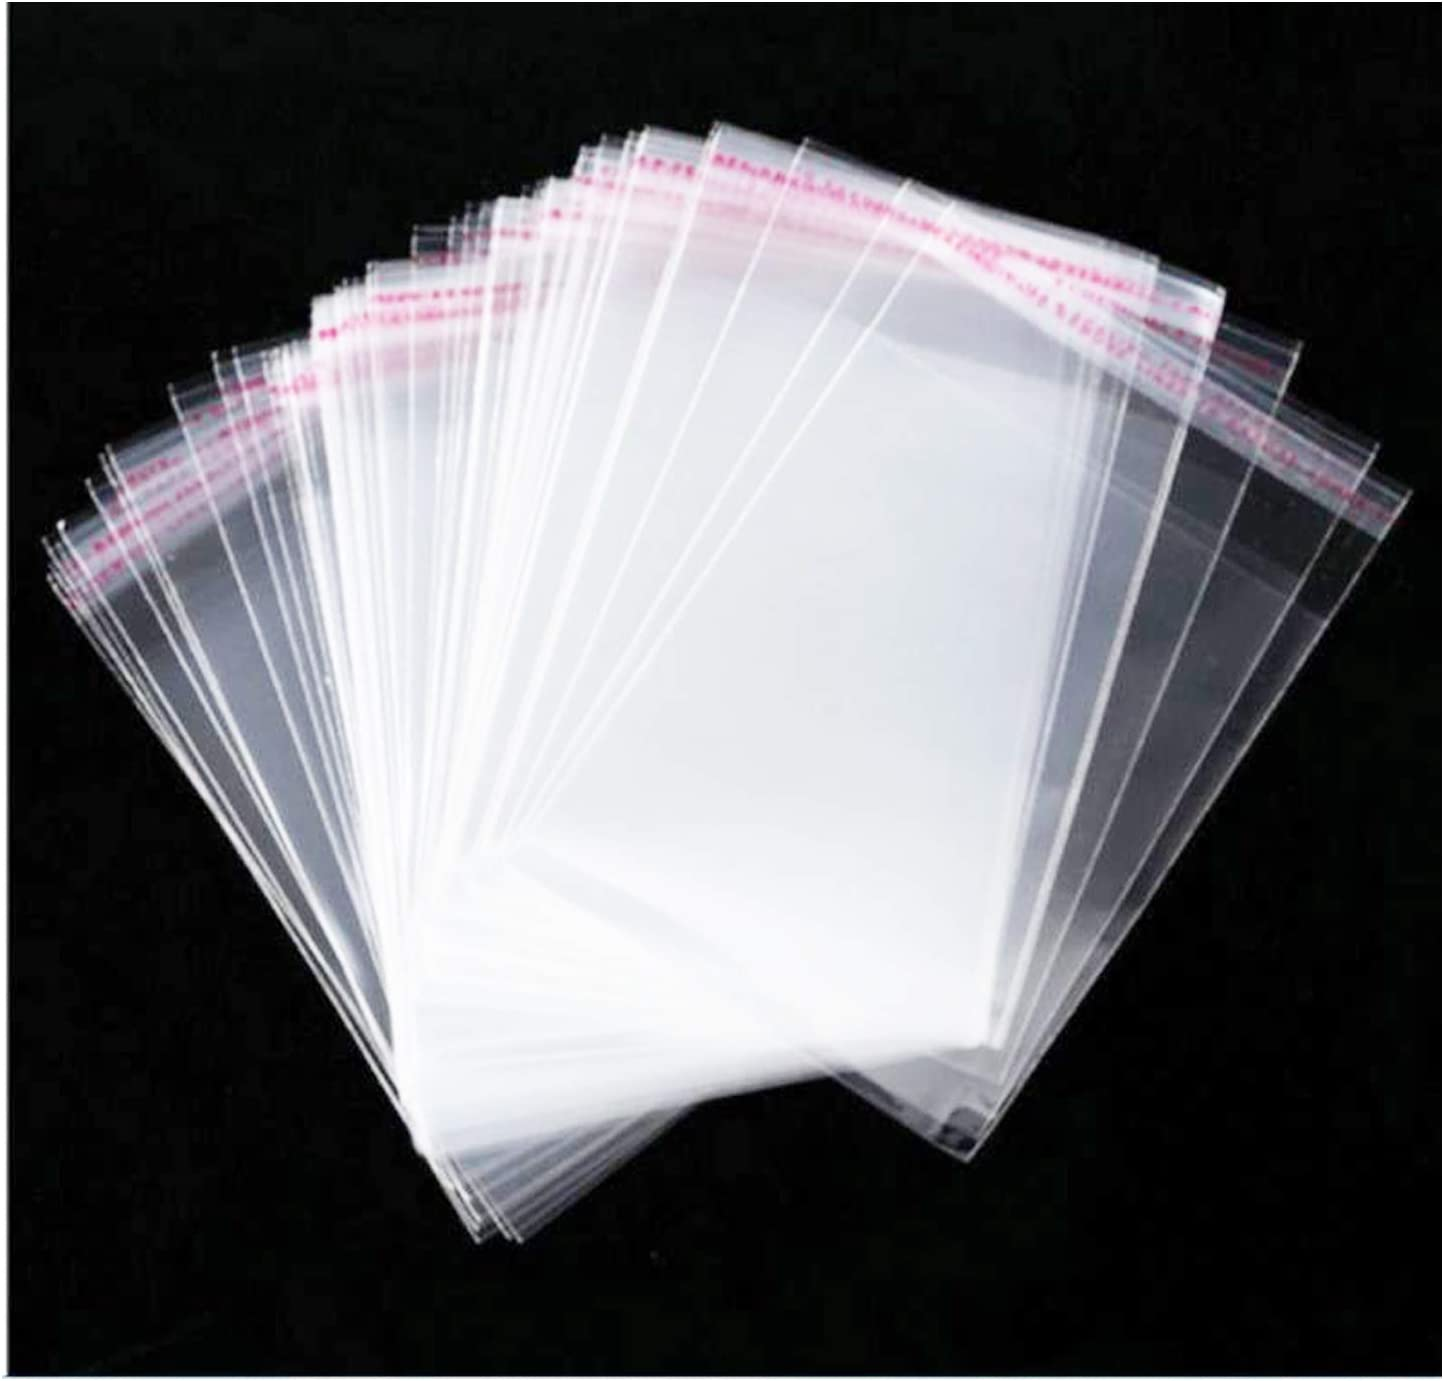 4x6 Clear Resealable Cellophane Bags Good for Bakery, Candle, Soap, Cookie (300 Pcs): Arts, Crafts & Sewing